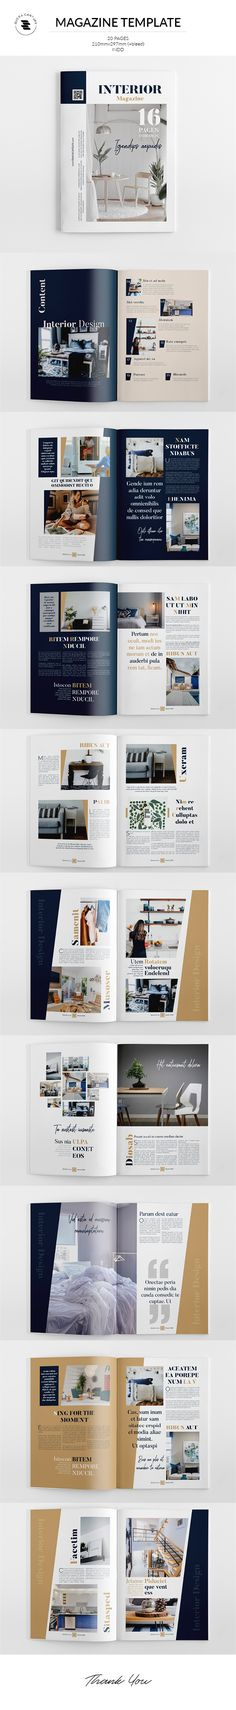 Buy Magazine Template by on GraphicRiver. Interior Magazine The Magazine. This layout is suitable for any project purpose. Modern House Design, Modern Interior Design, Interiors Magazine, Magazine Template, Photo Displays, Web Design, Creative Design, Restaurant Brochure, Typography